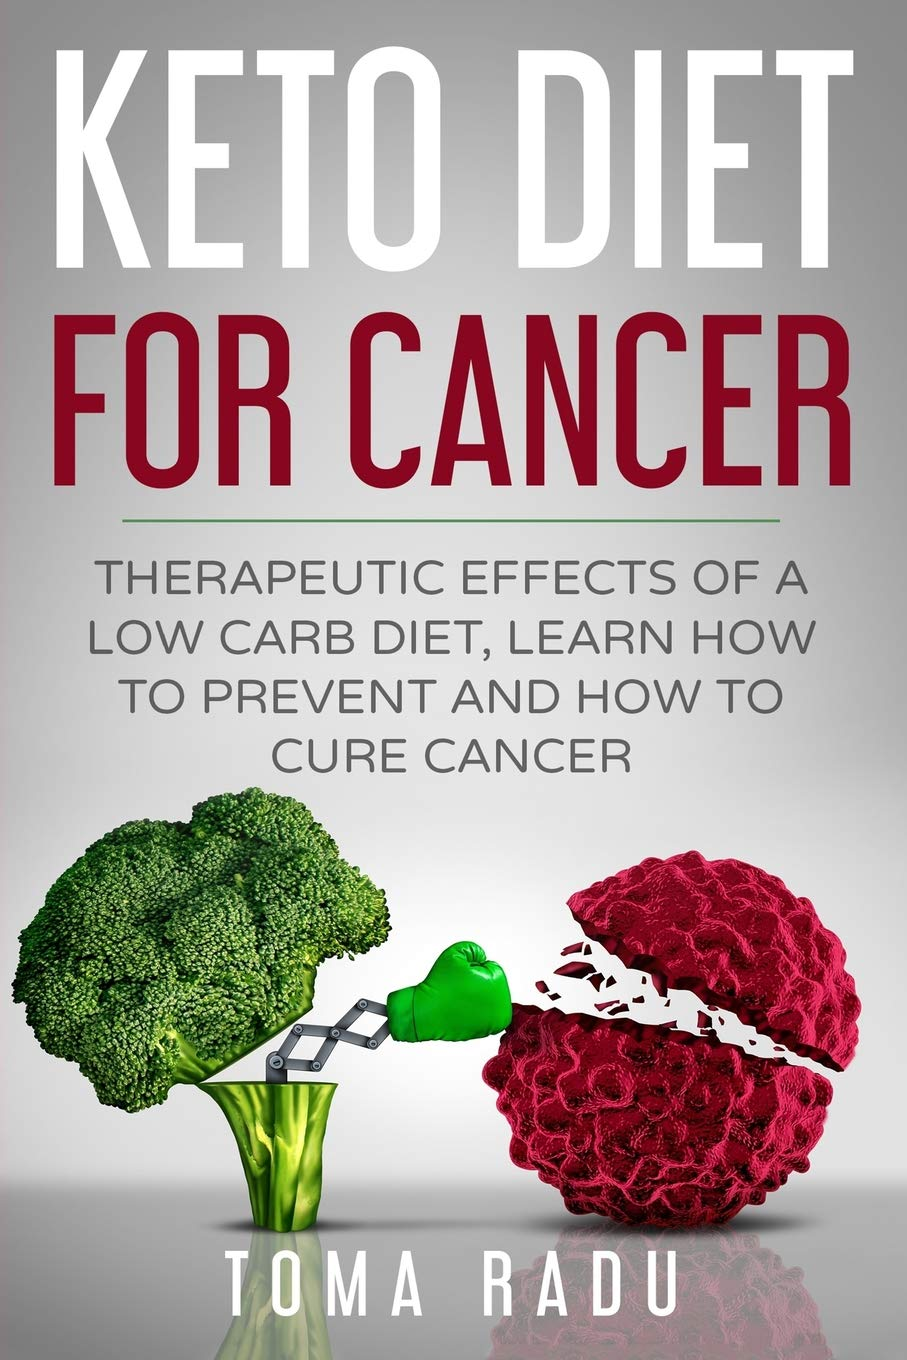 ketogenic diet fights cancer